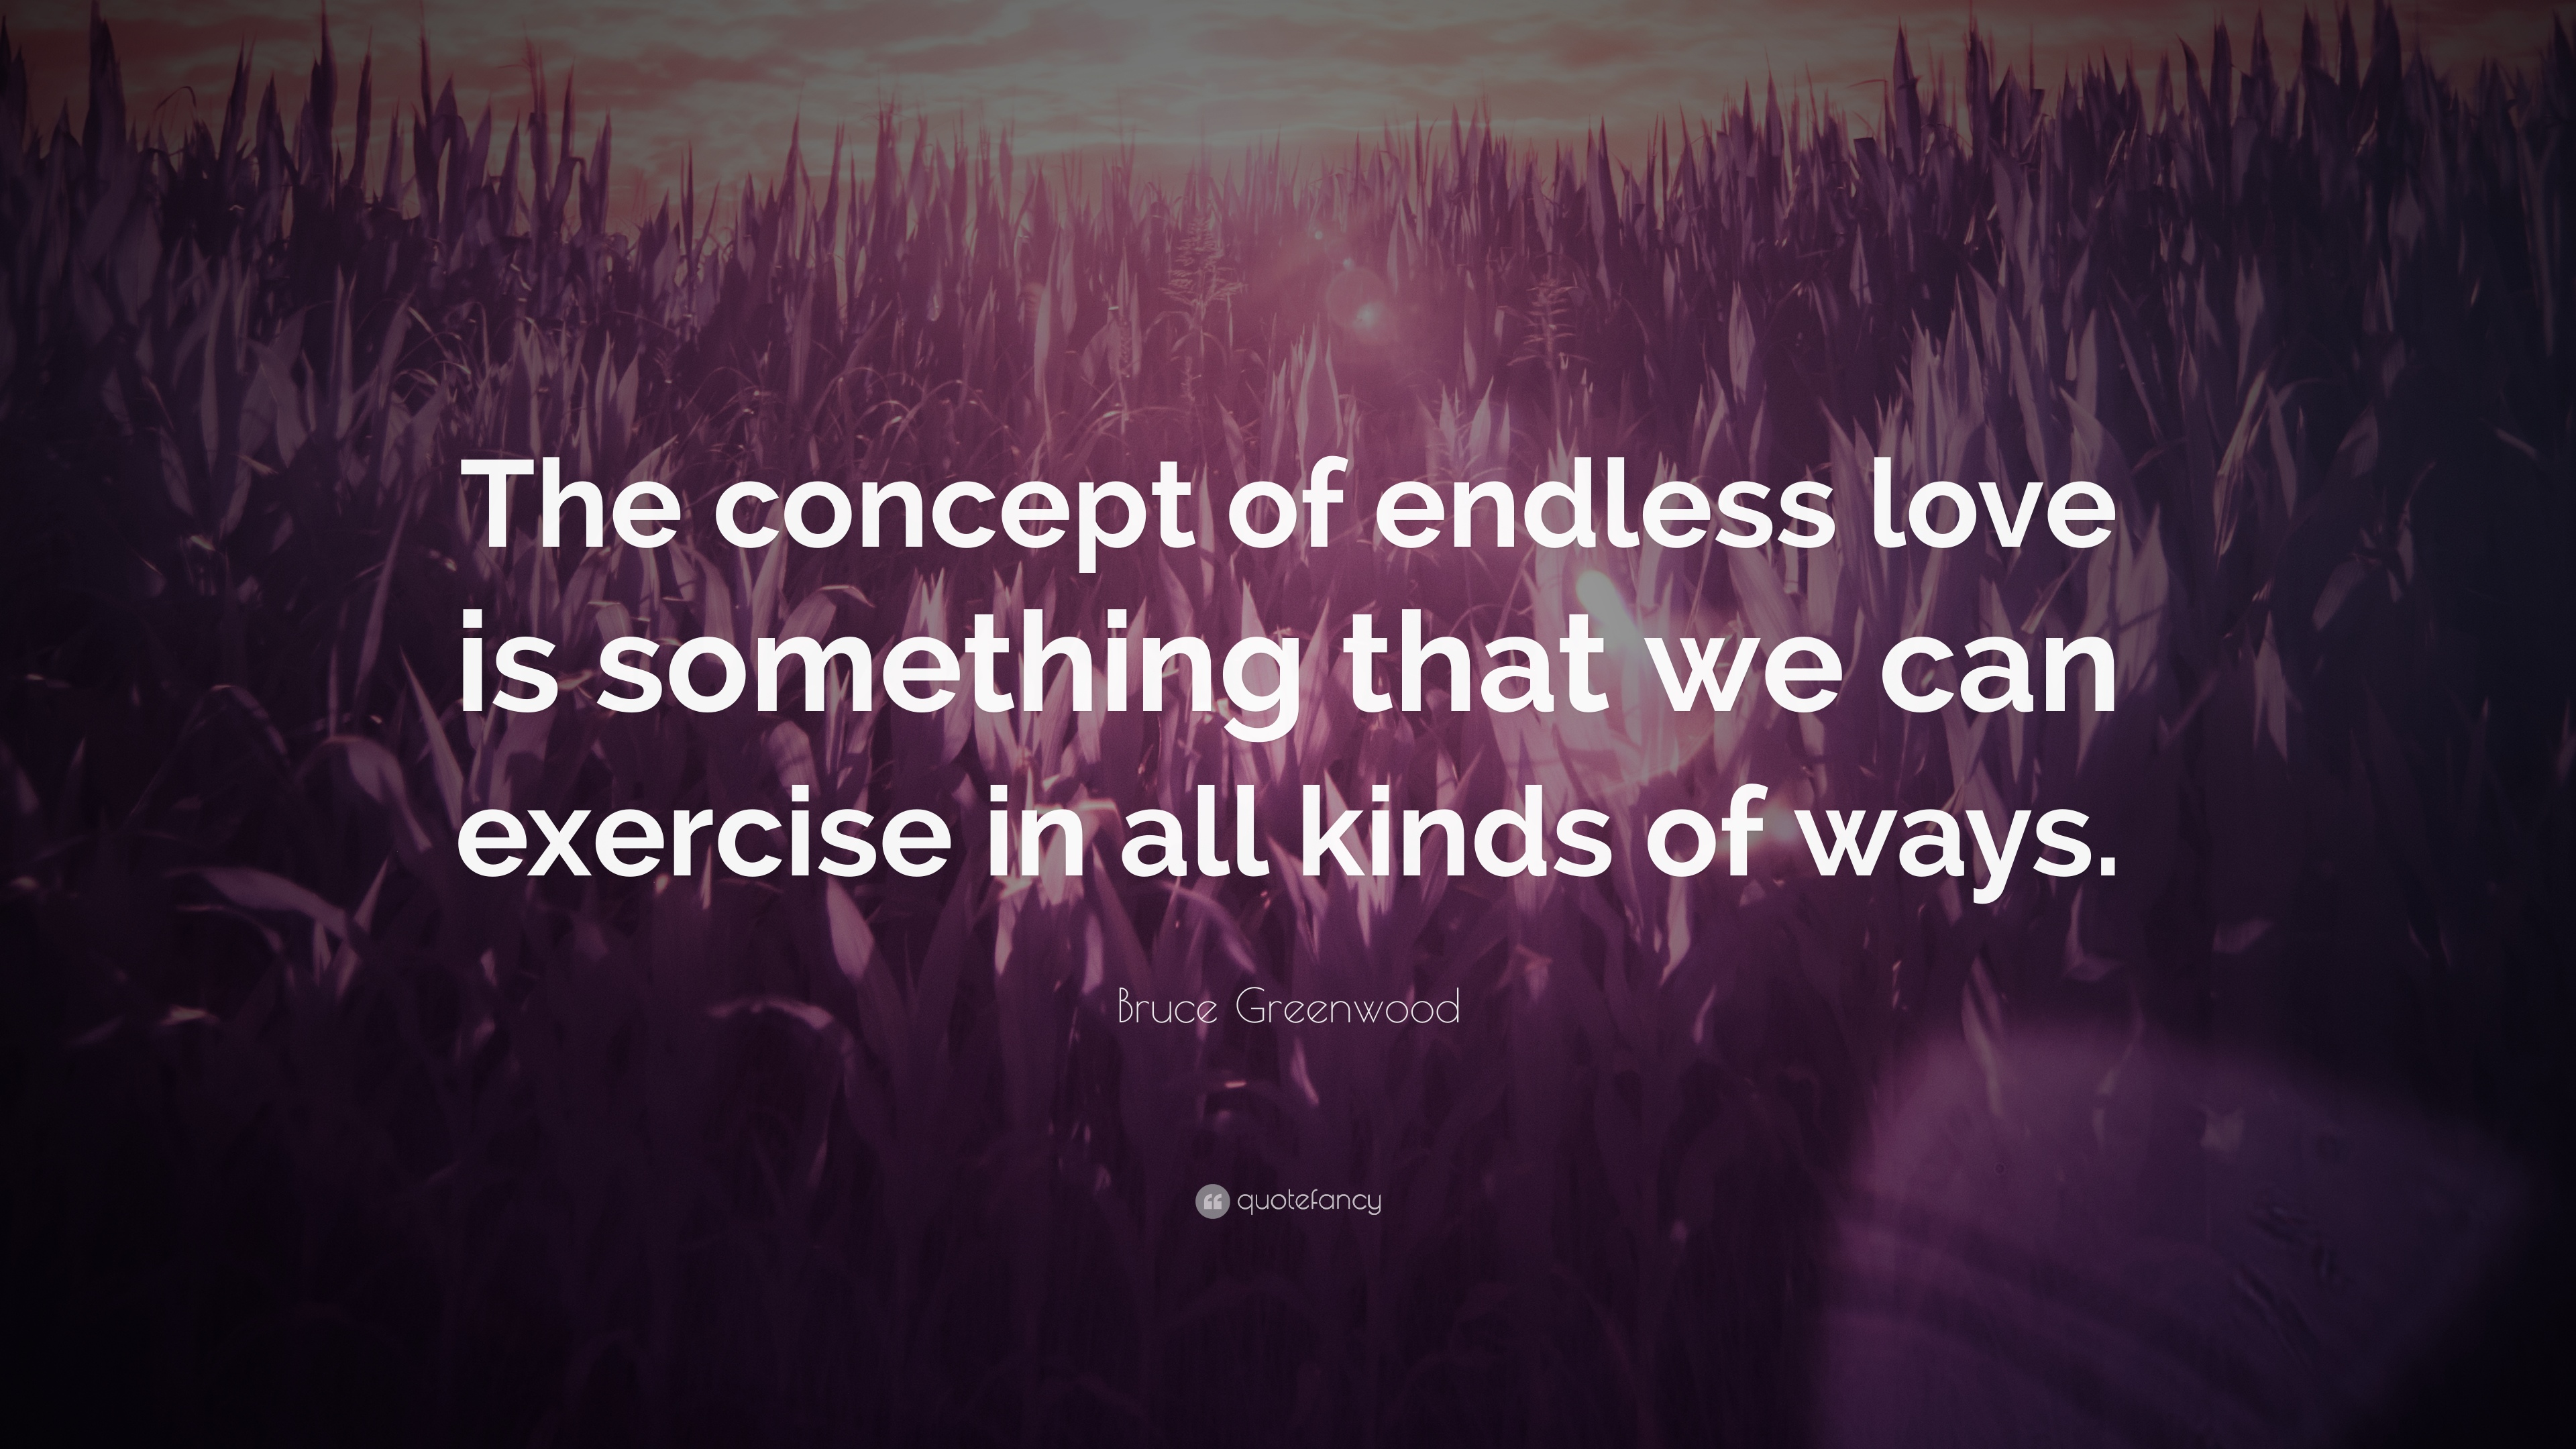 Endless Love Quotes Extraordinary Bruce Greenwood Quotes 11 Wallpapers  Quotefancy